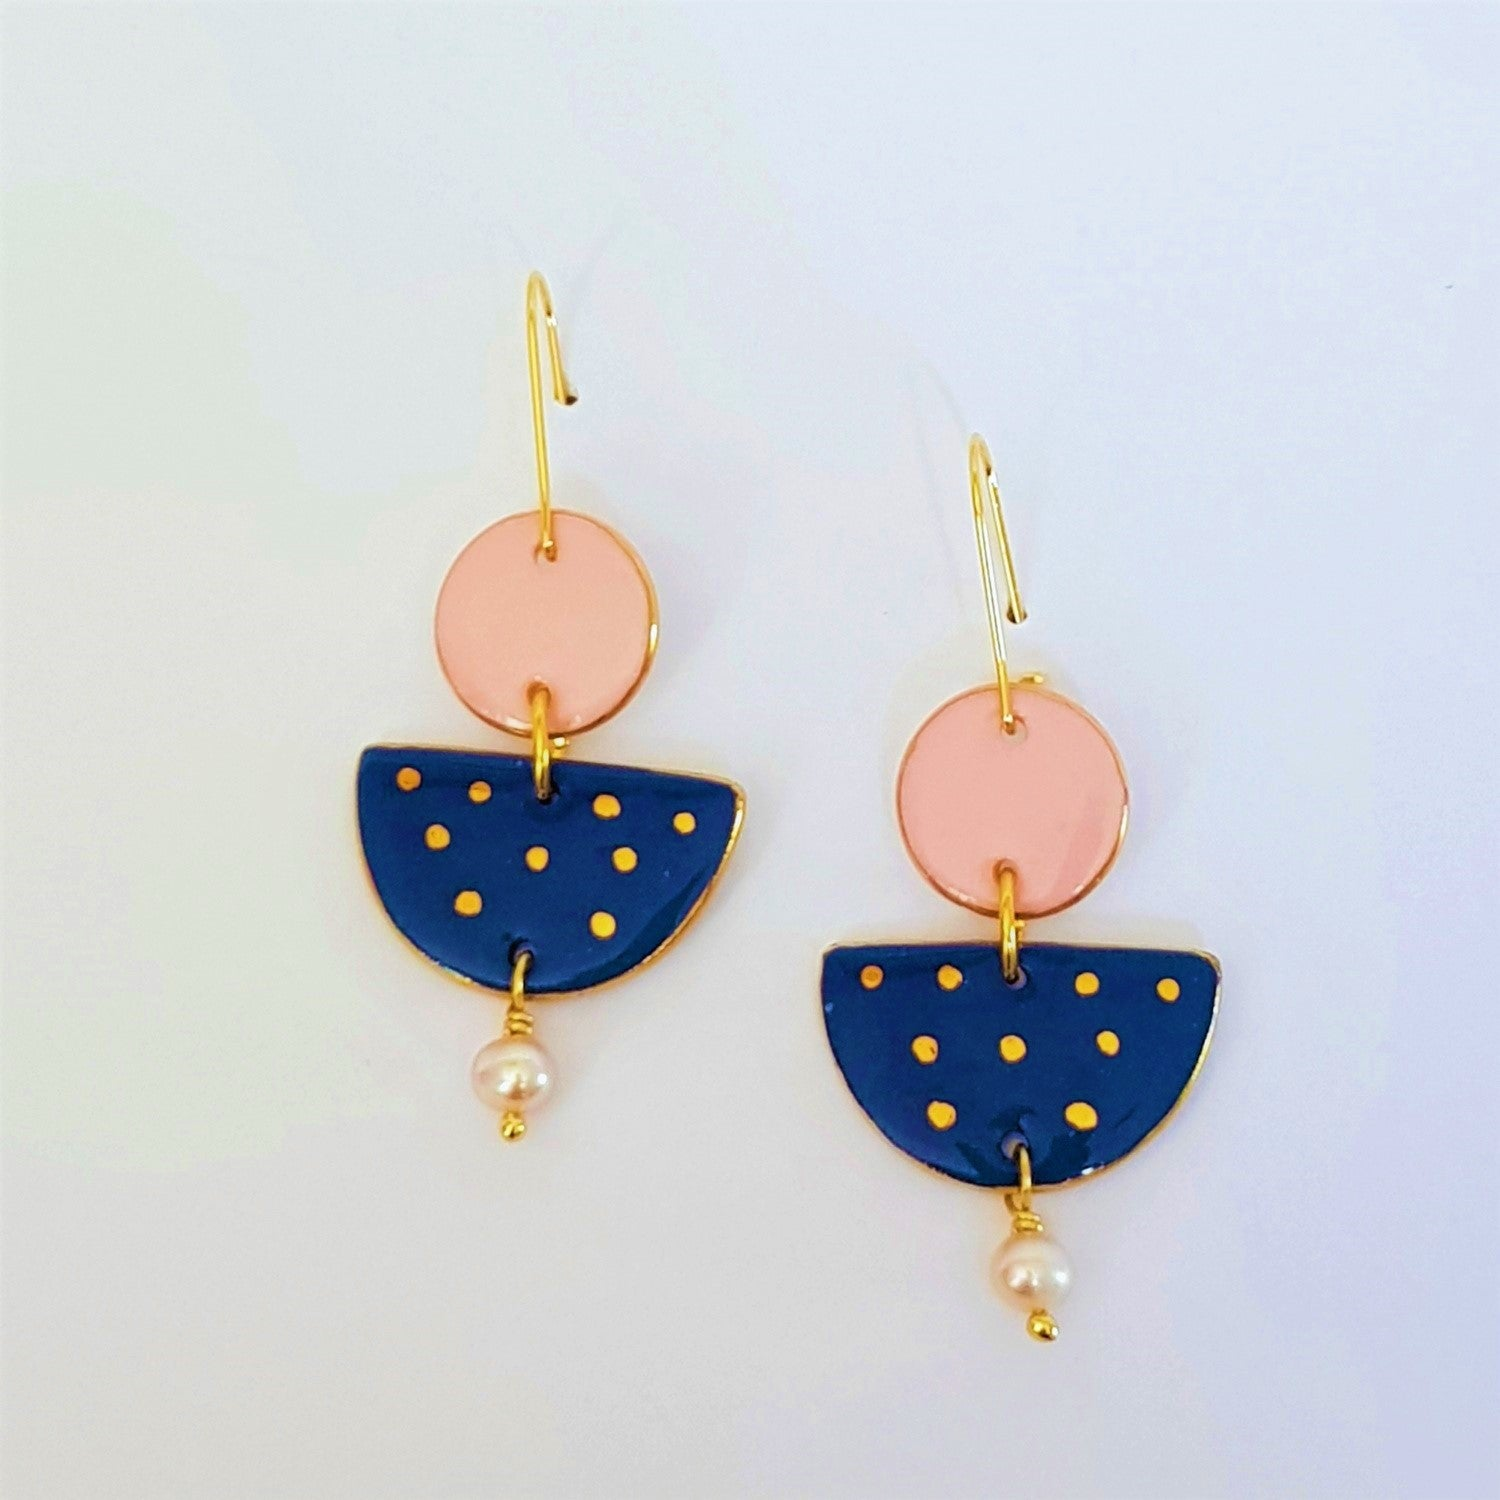 Soft pink and denim blue , two-tiered earrings with freshwater pearls